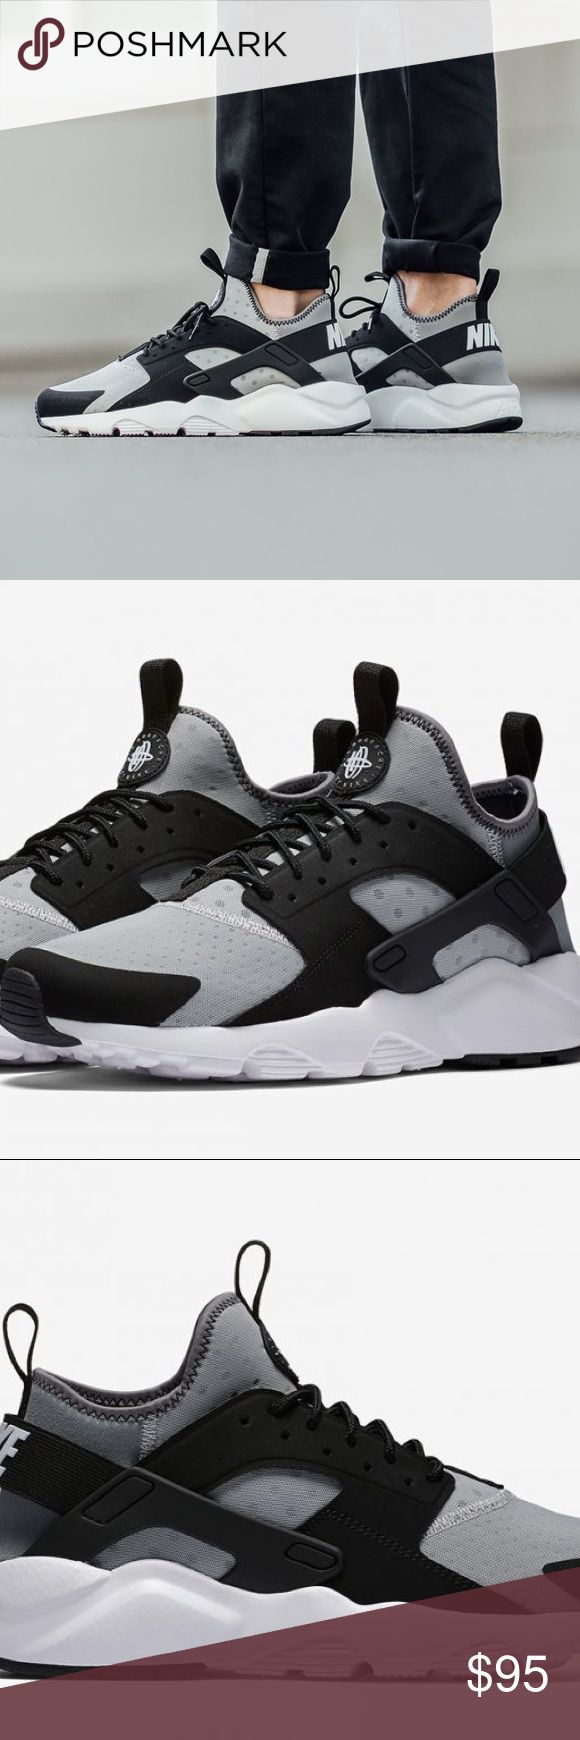 """Nike HURACHE ULTRA 2017 $120 Wolf Grey / Black """"Nike Sportswear just debuted their newest Nike Air Huarache release with the launch of this Nike Air Huarache Ultra Wolf Grey colorway."""" -Sneaker Bar Detroit   Nike Air Hurache Ultra 2017  Color: Wolf Grey /White-Black  Size: 10  Retail: $130   The Nike Air Hurache Ultra: A sneakerheads go to shoe. Comfort, style, and reliability make this shoe perfect for any occasion.  Step out in iconic style in the Men's Nike Air Huarache Run Ultra Casual…"""